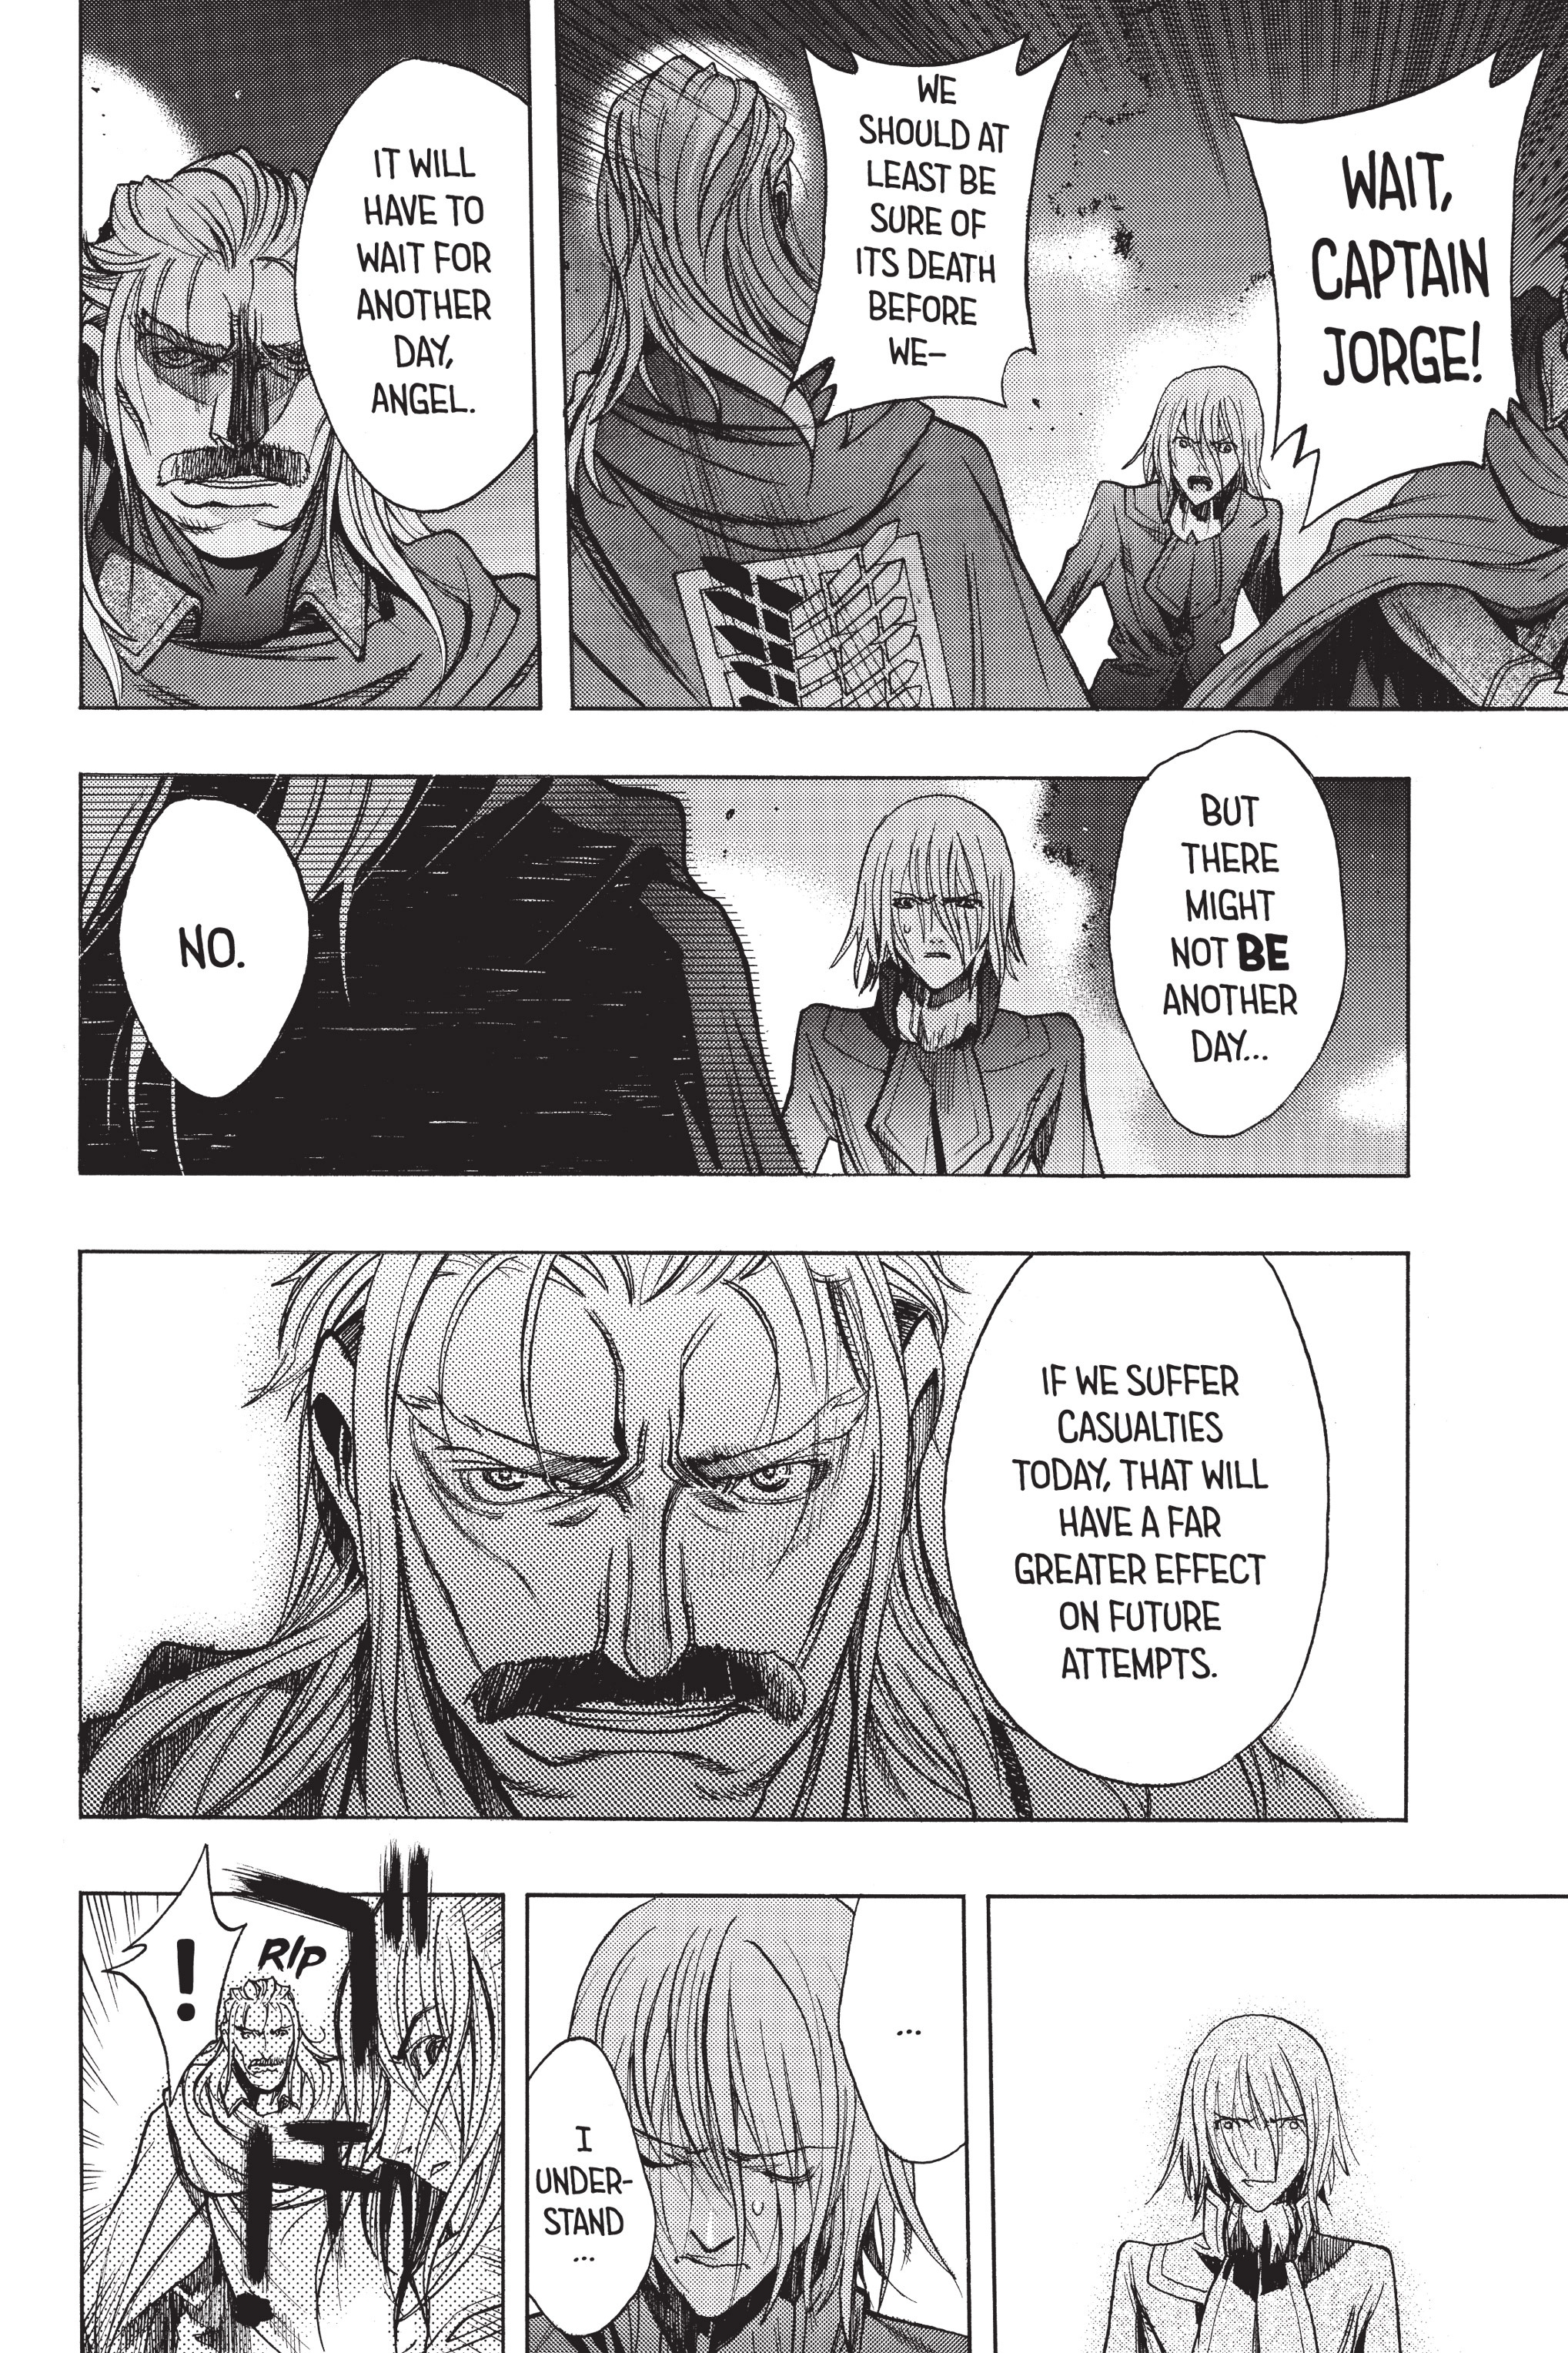 Read online Attack on Titan: Before the Fall comic -  Issue #5 - 190